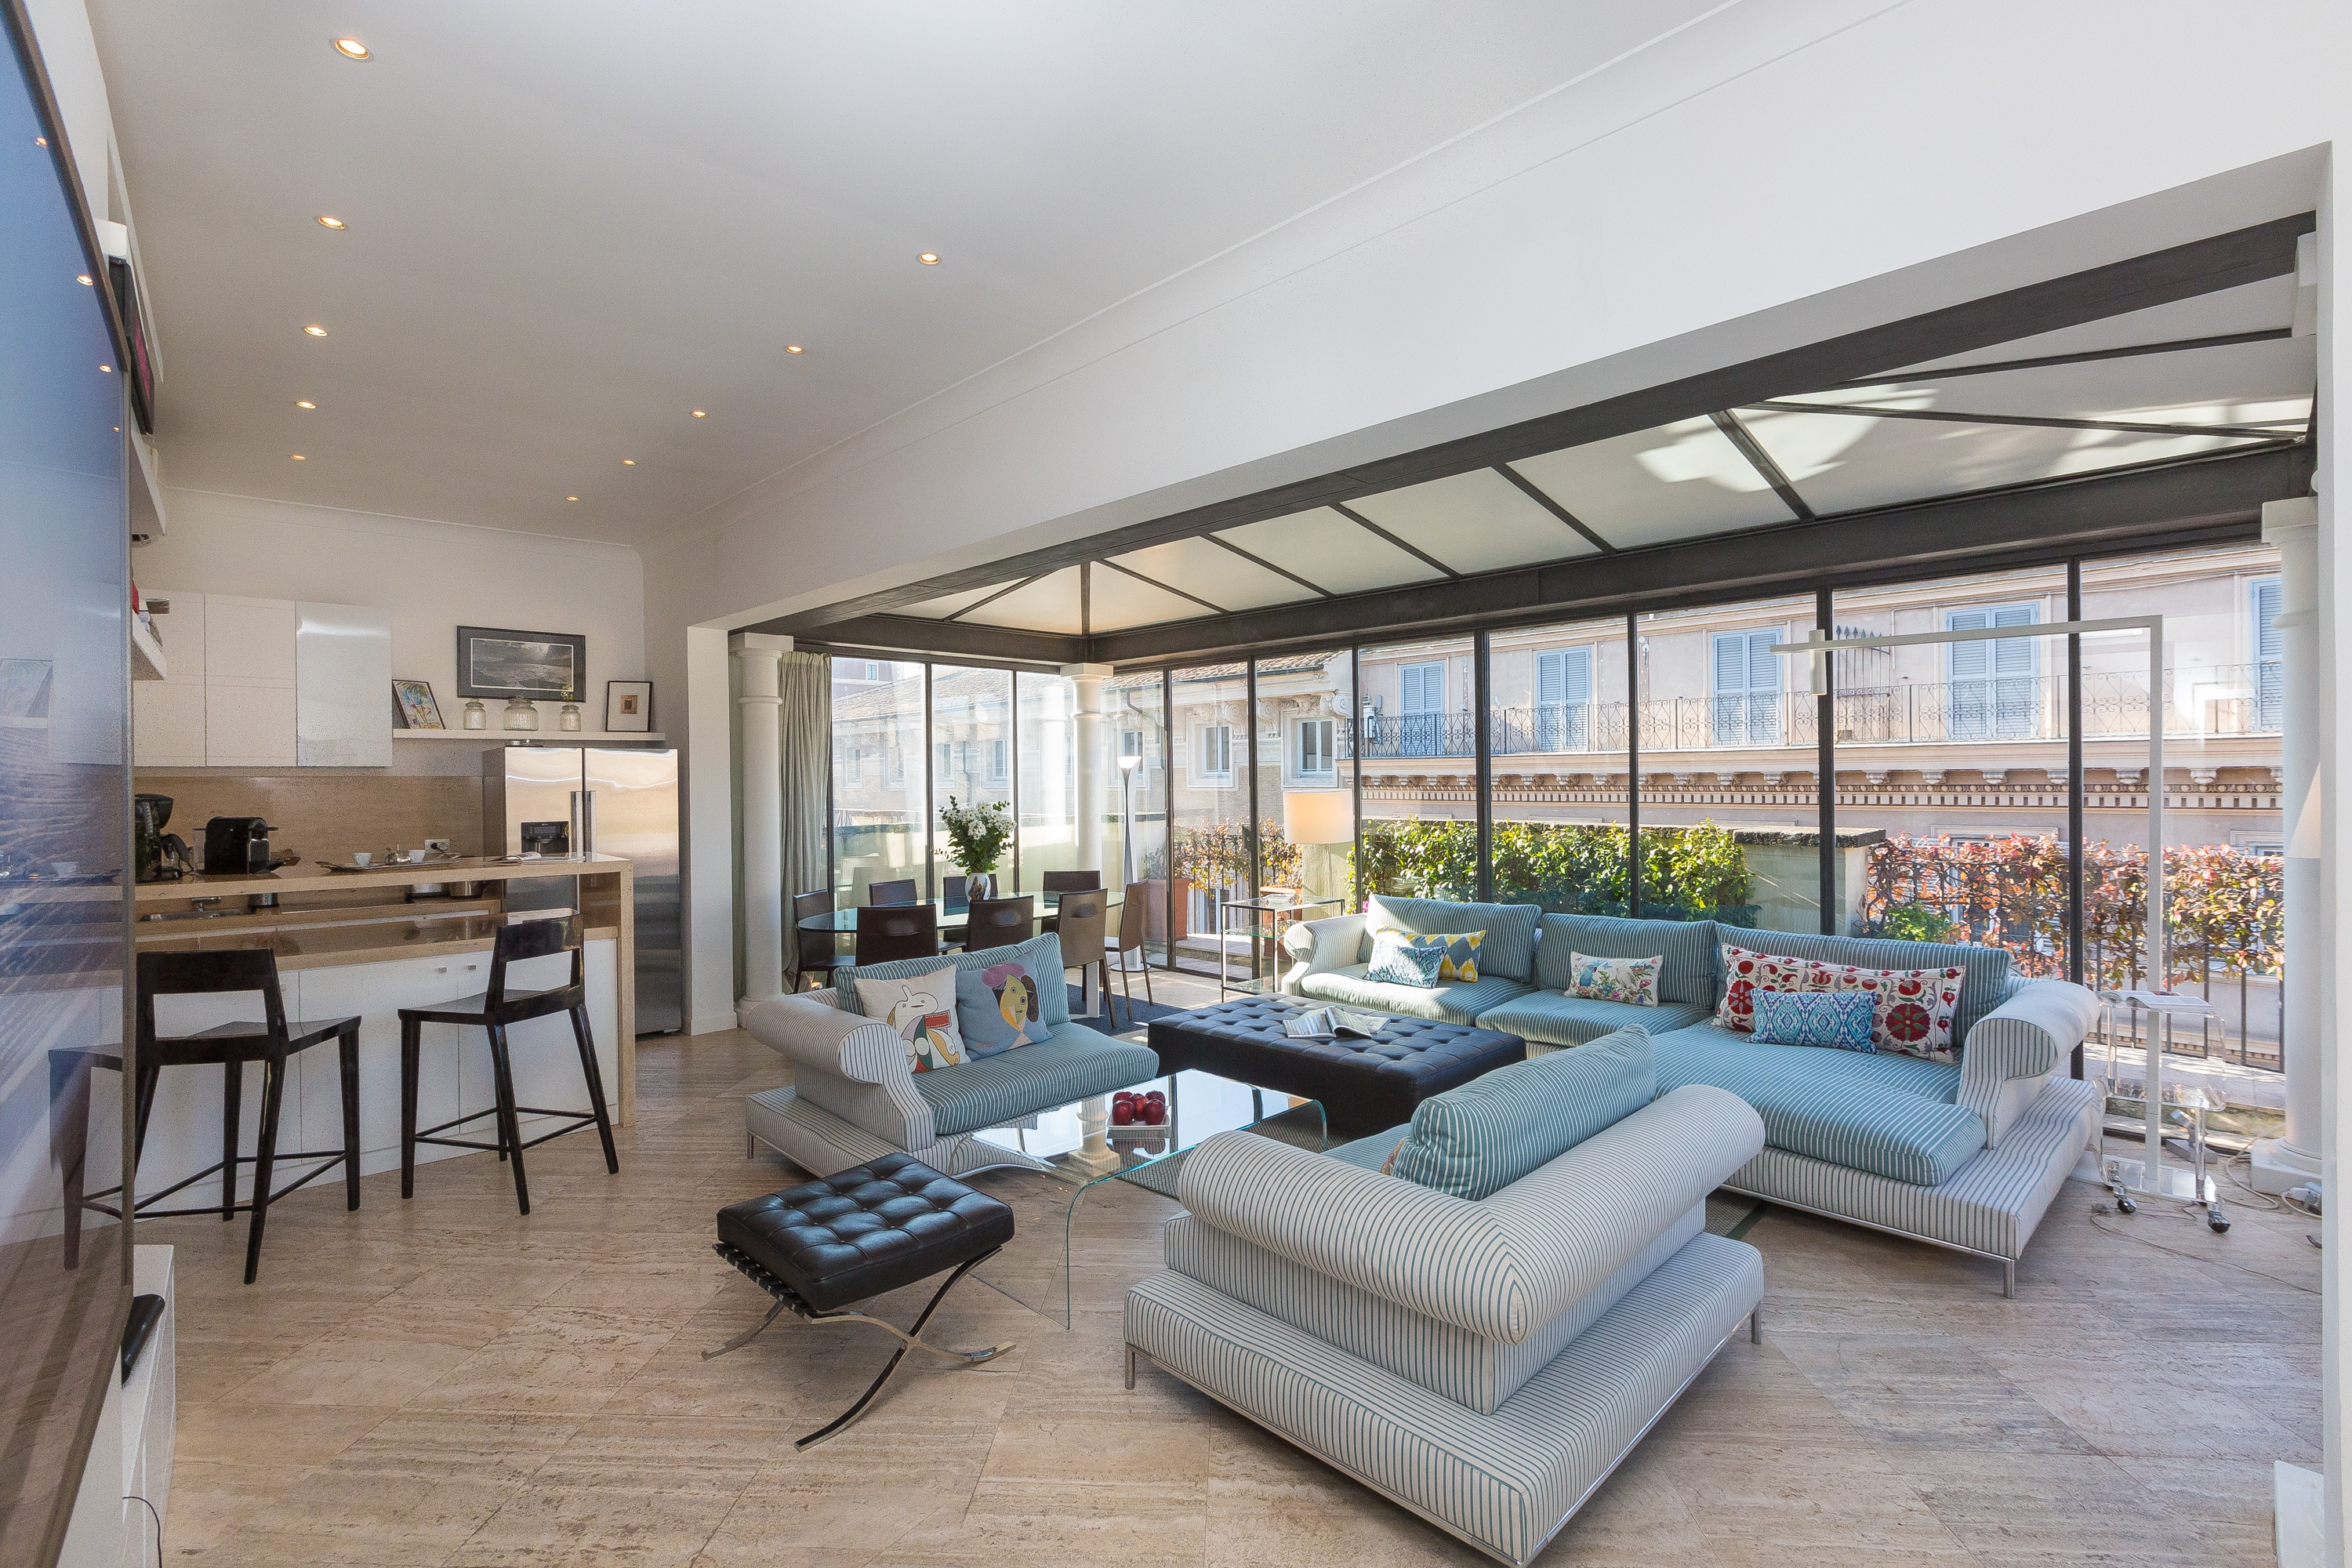 Breathtaking Four Bedroom Apartment near the World Iconic Colosseo